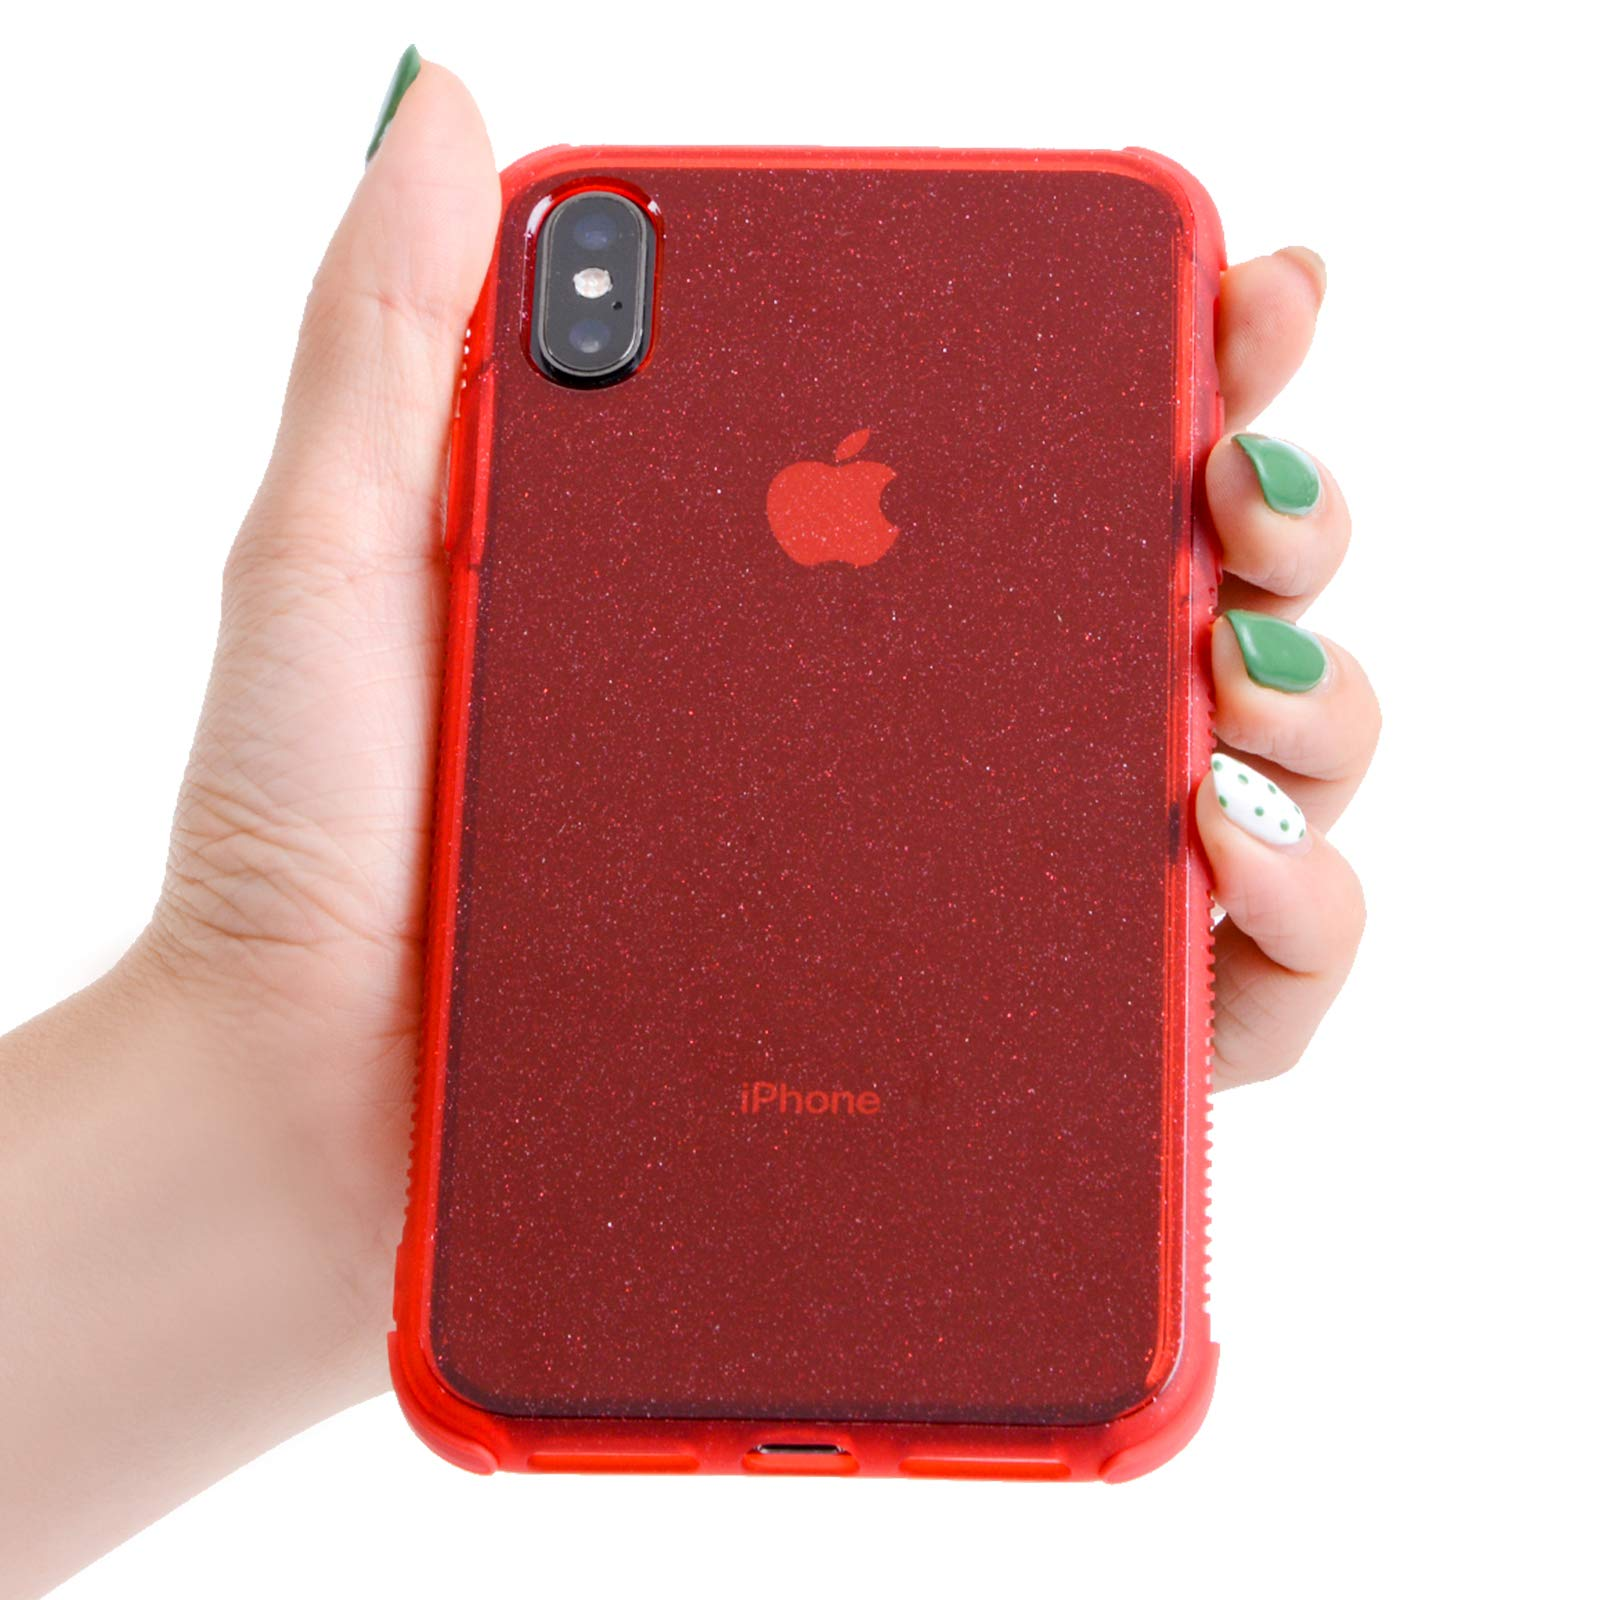 Voilamart iPhone X Case, iPhone Xs Case Bling Shiny Cute Pattern Design Sparkle Glitter Anti-Slick/Protective Case for iPhone X/Xs 5.8 Inch, Red